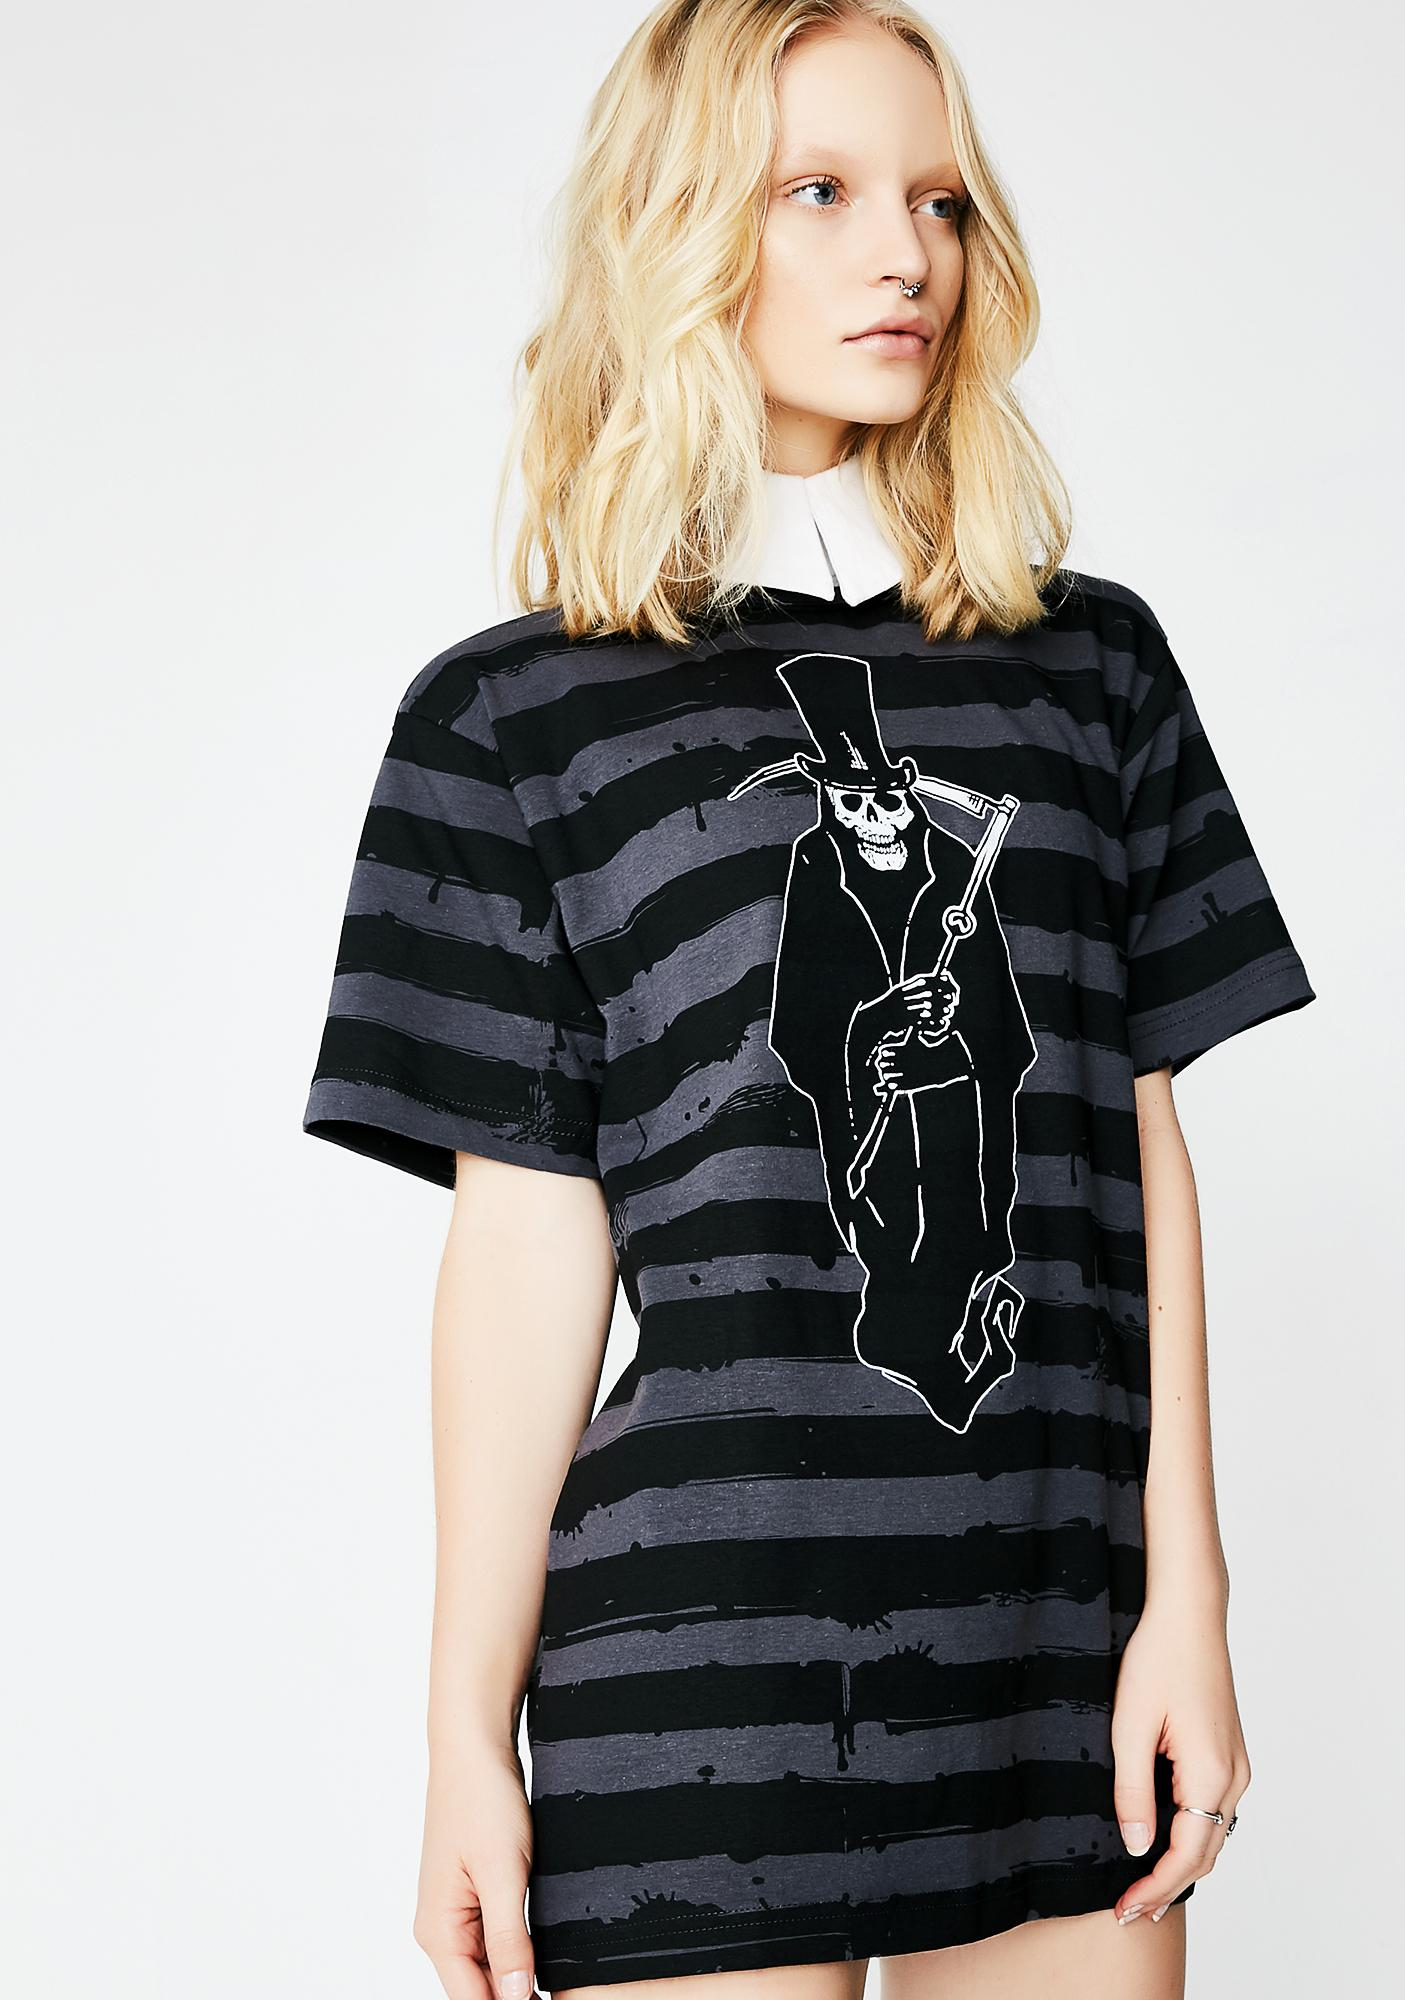 Kreepsville 666 Mr. Reaper Striped T-Shirt